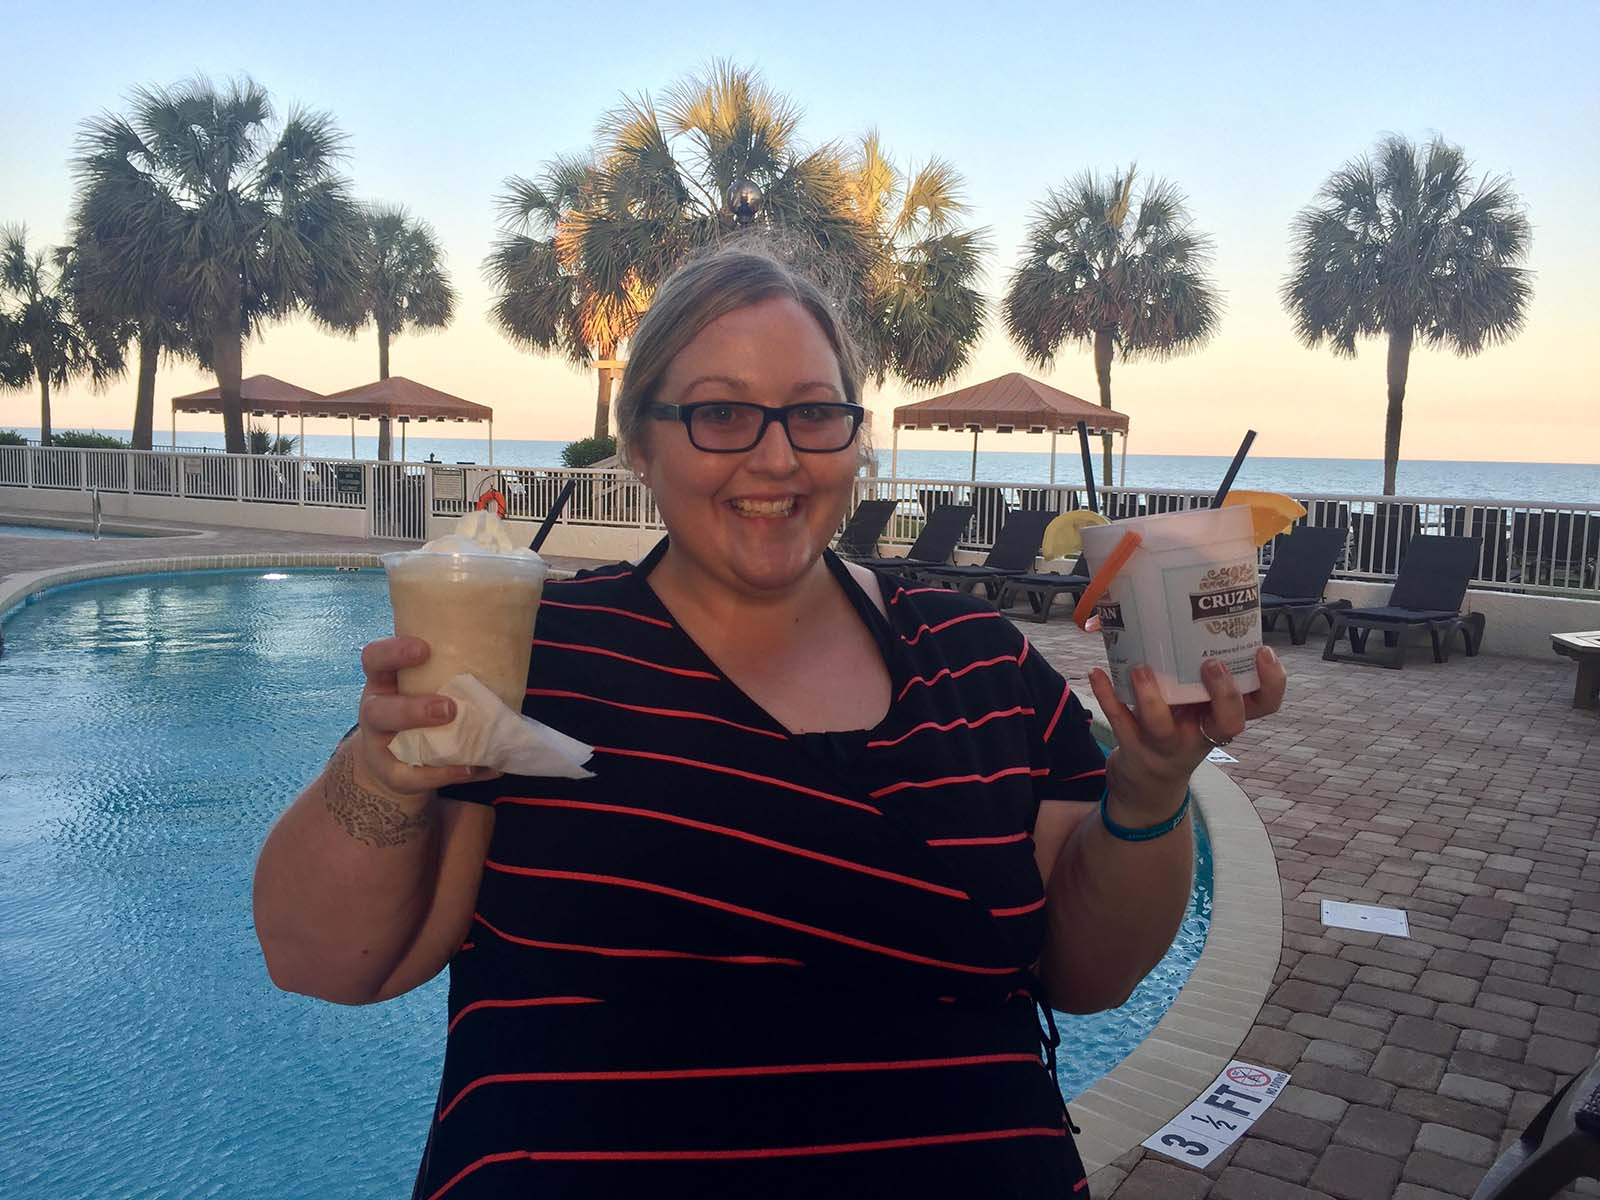 Lady with drinks on pooldeck holding them up